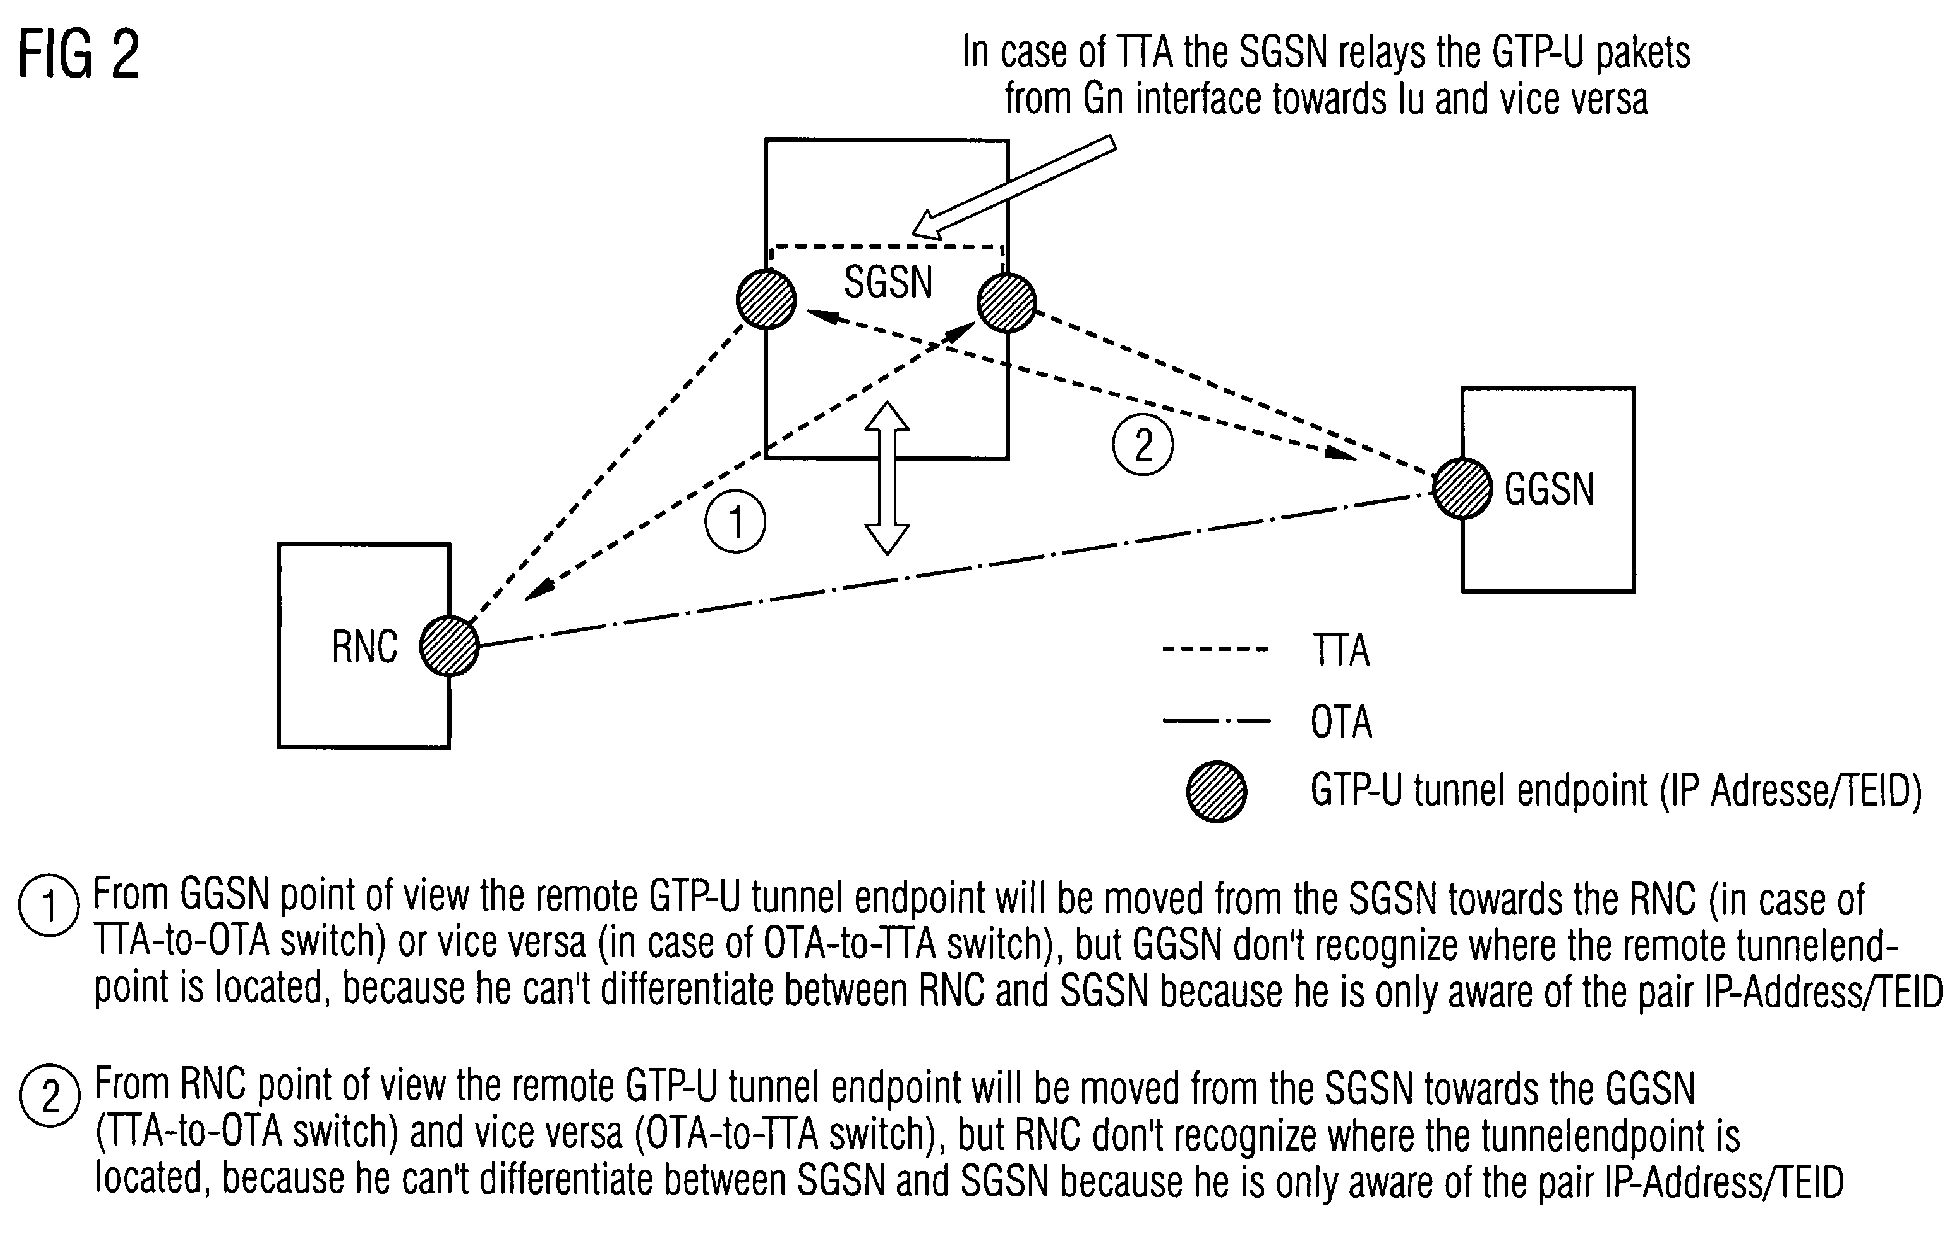 Tunnel switching mechanism inside a SGSN for OTA (one tunnel